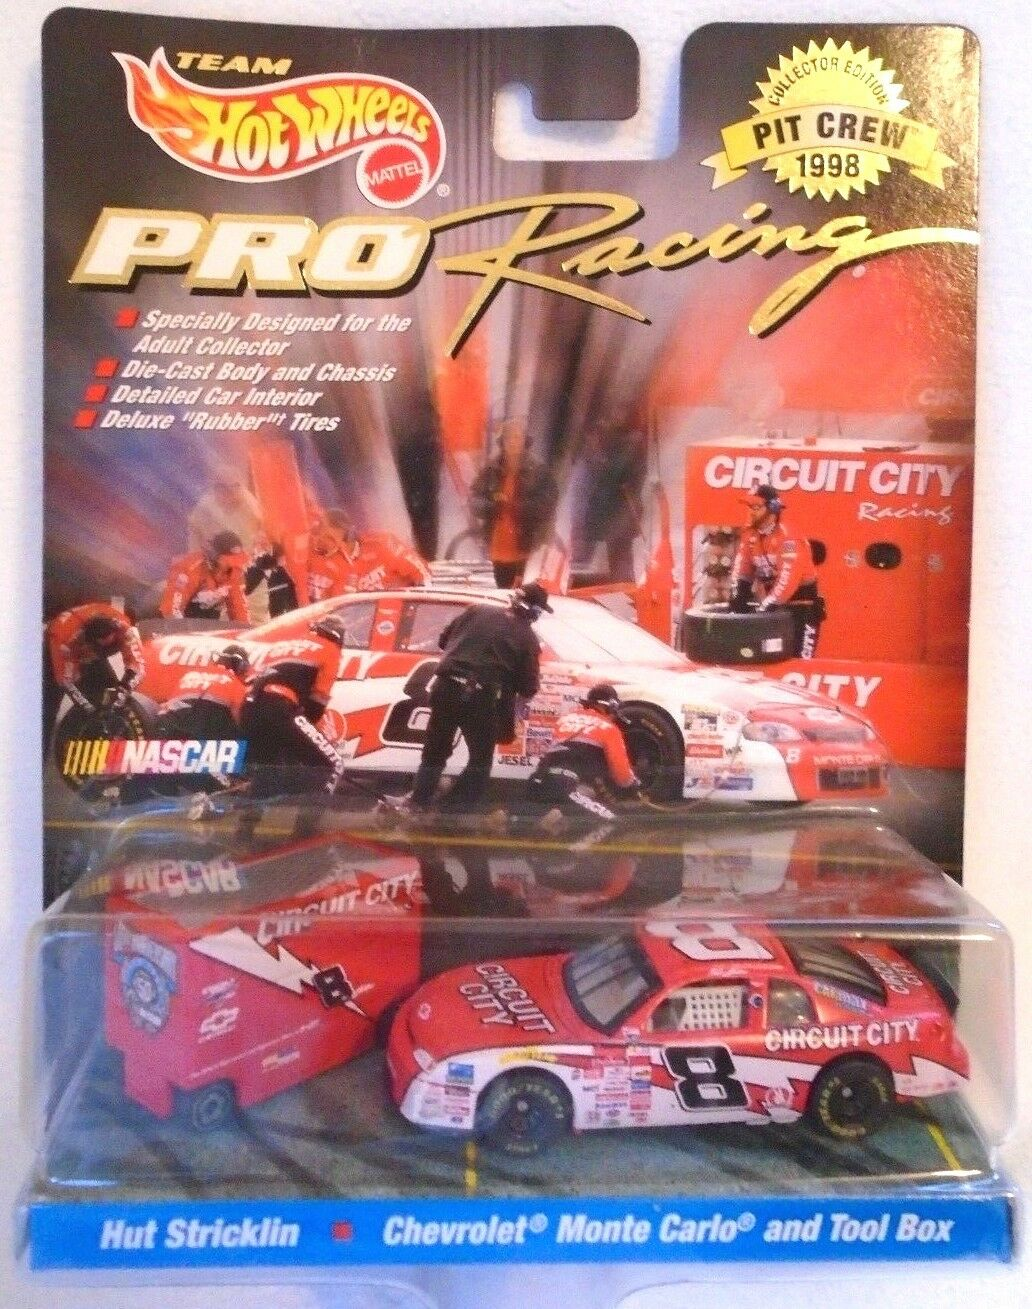 NASCAR Hot Wheels Pro Racing Circuit City Pit Crew 1 64 Car & Tool Box 1998